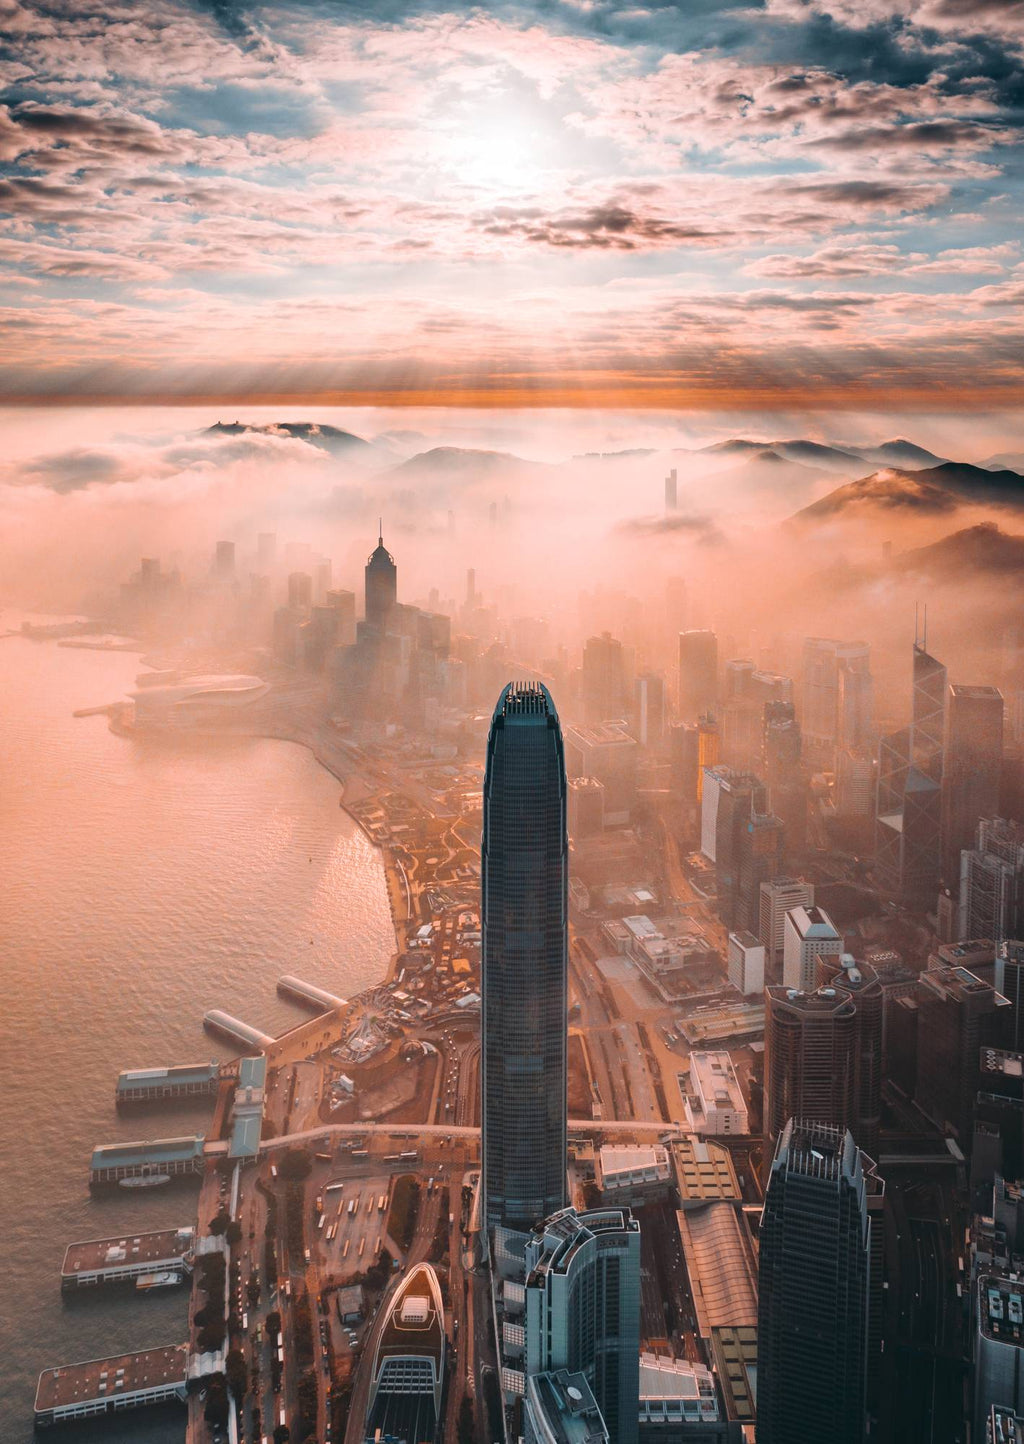 Inversion Hong Kong by John Huang - Print